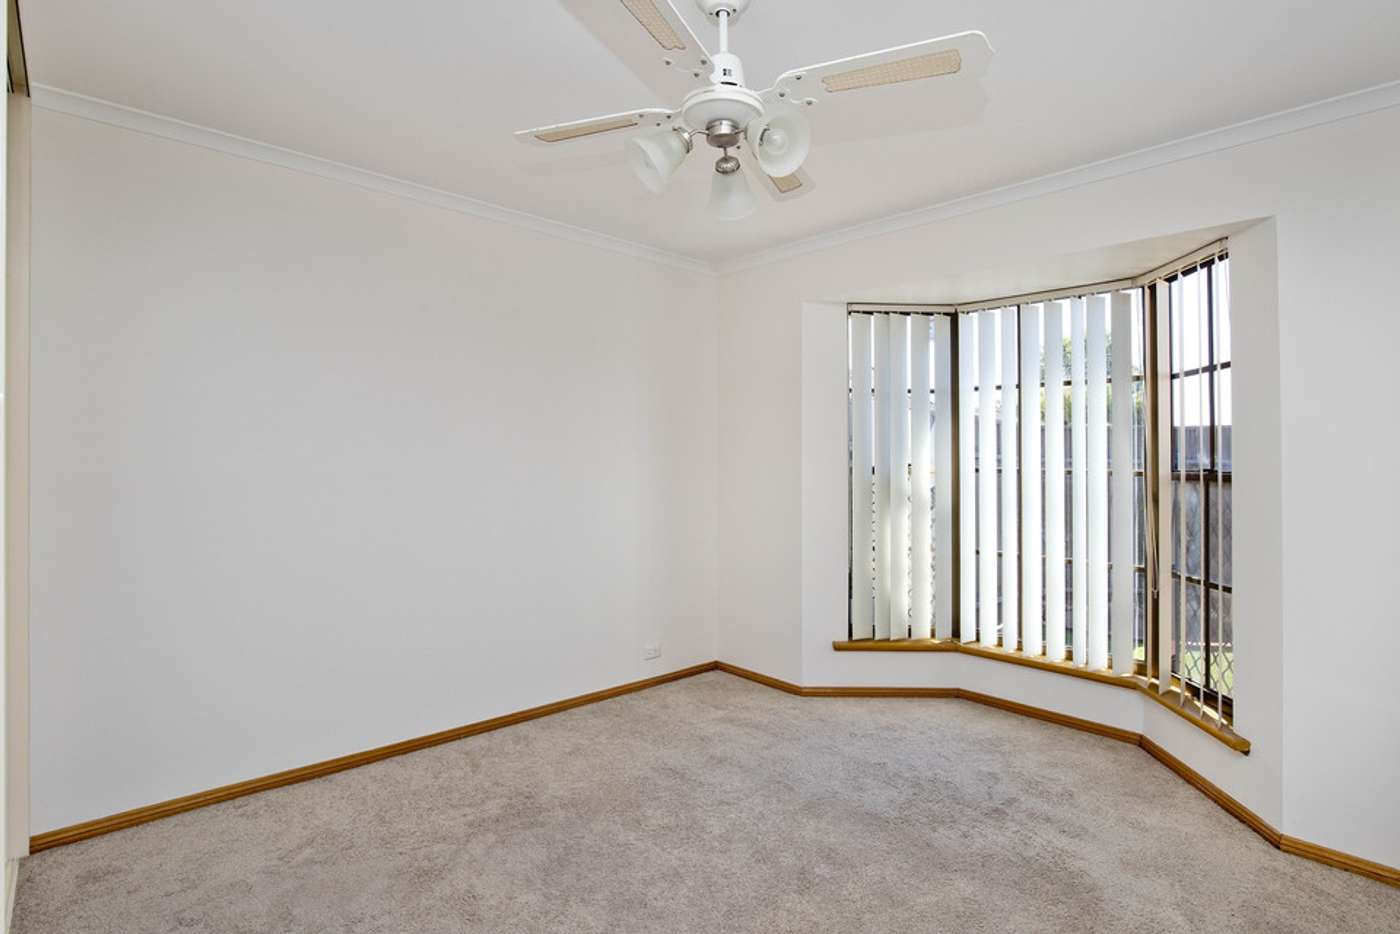 Sixth view of Homely unit listing, 3/18 Gorge Road, Campbelltown SA 5074